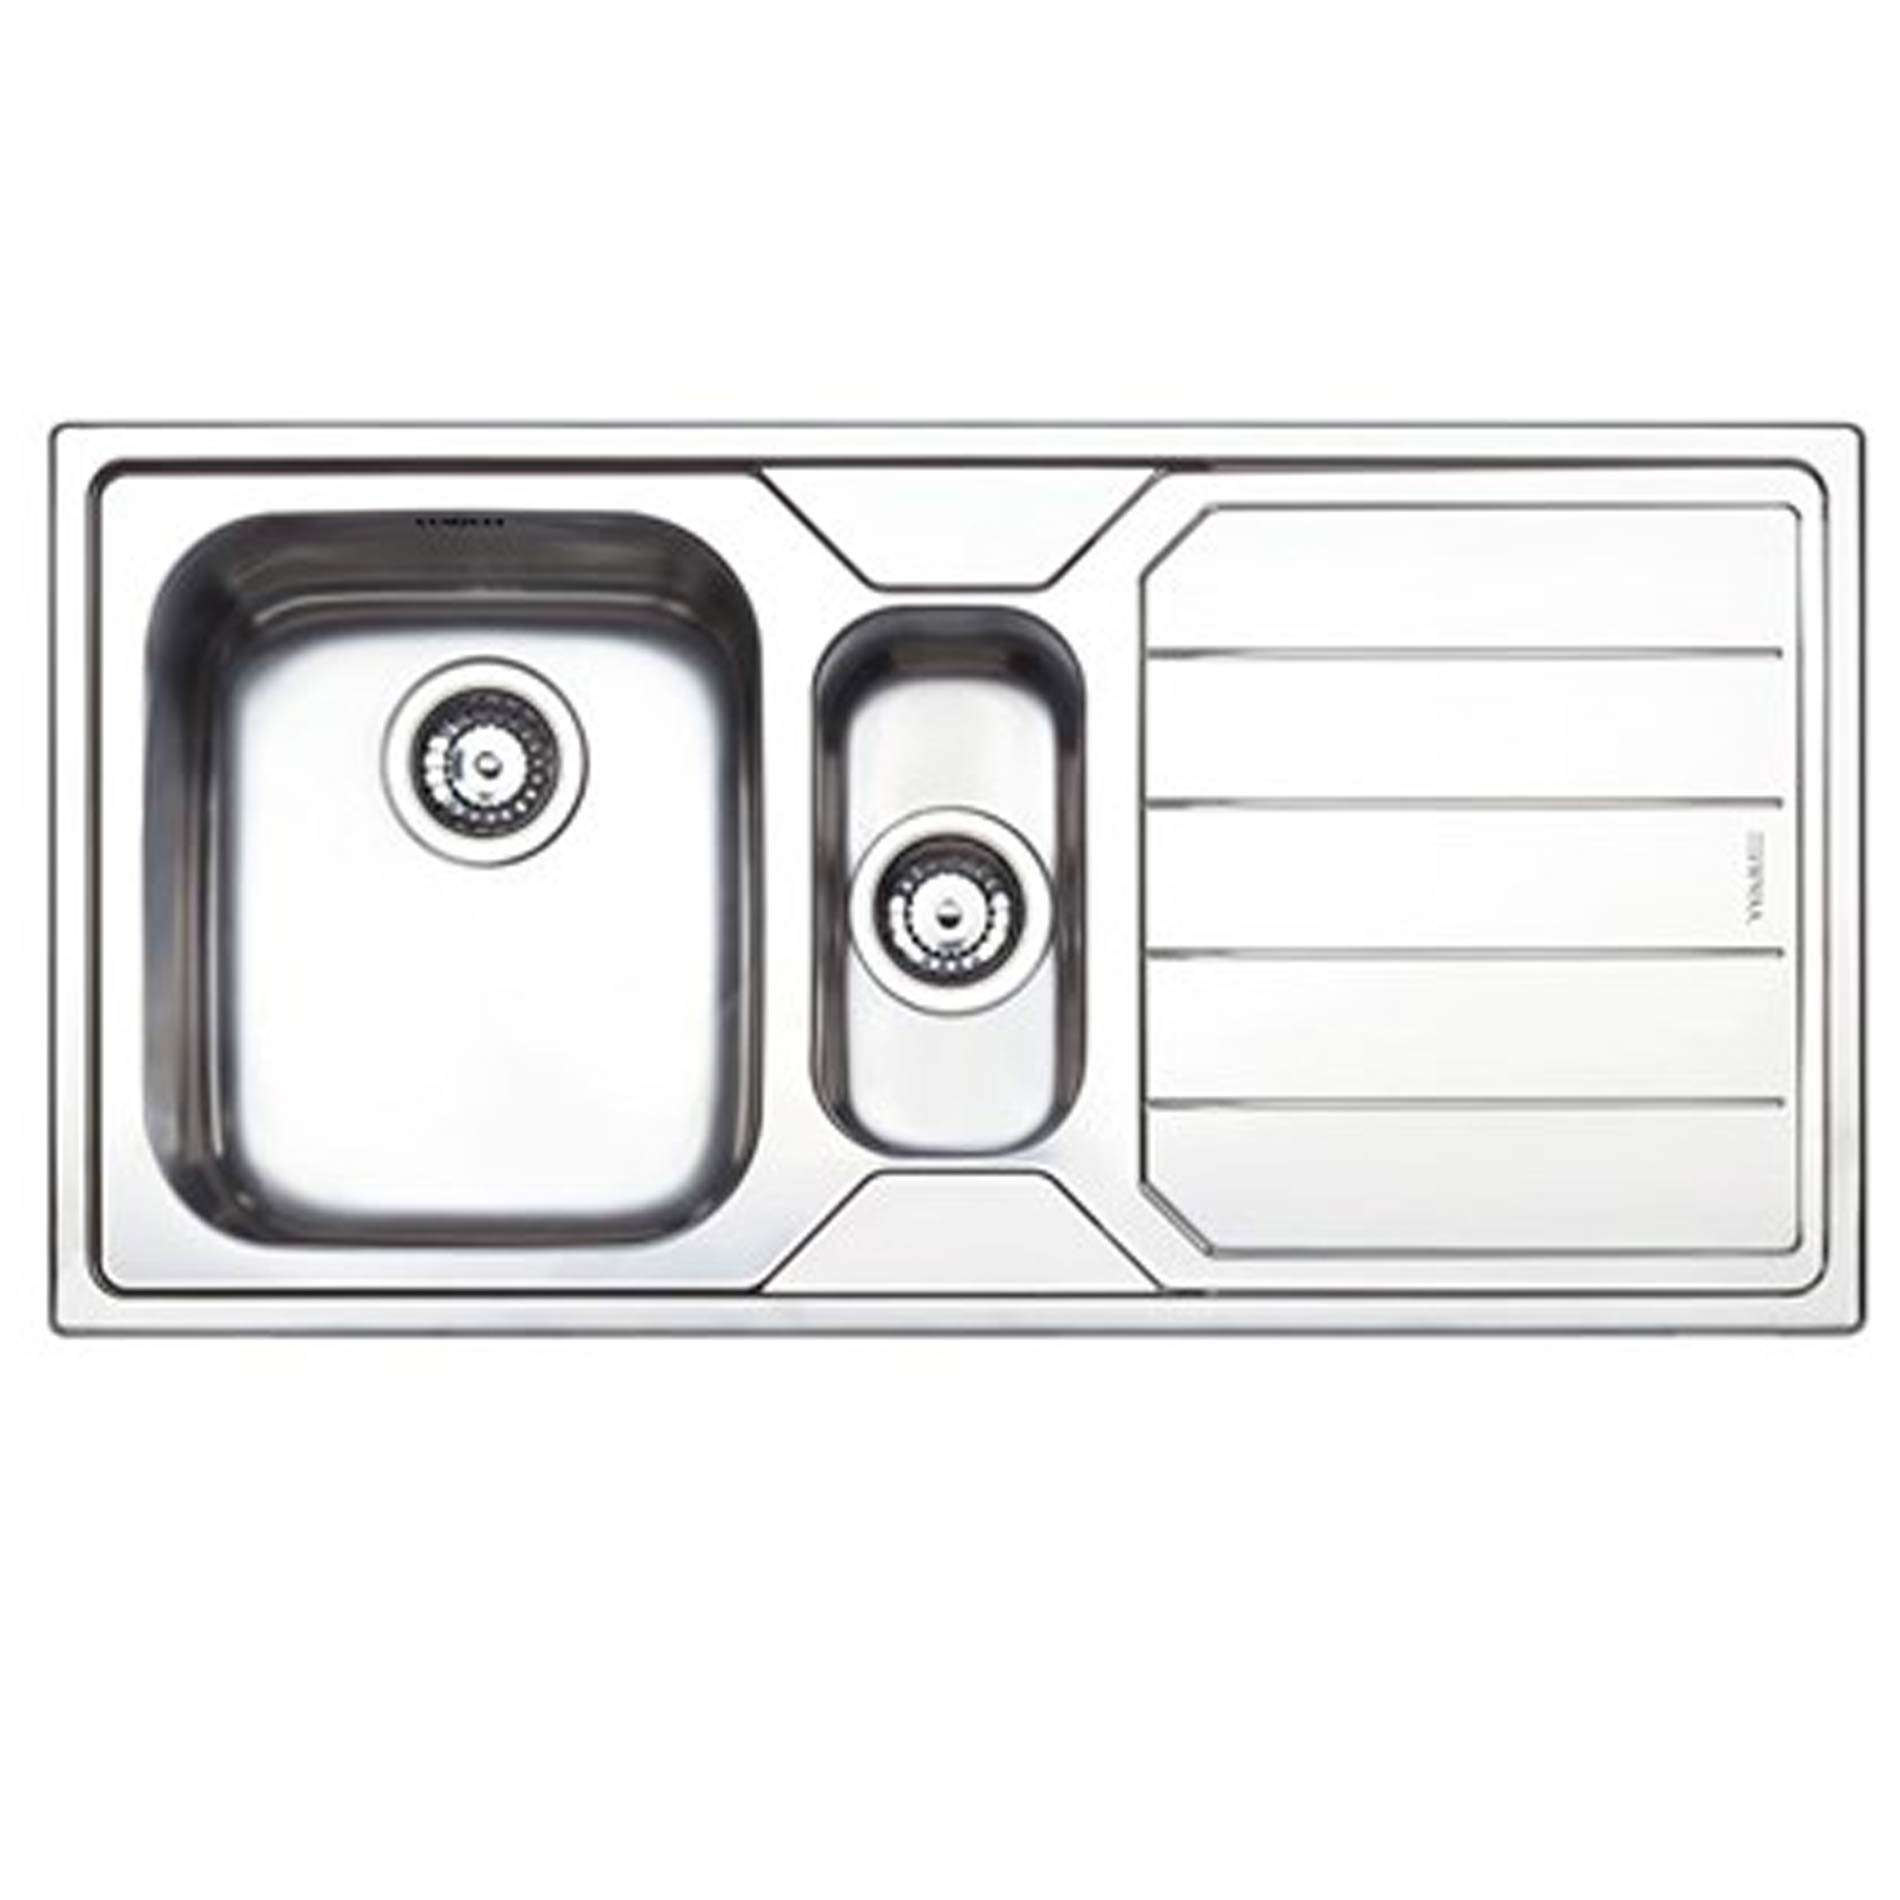 1.5 Bowl With Drainer - Kitchen Sinks & Taps